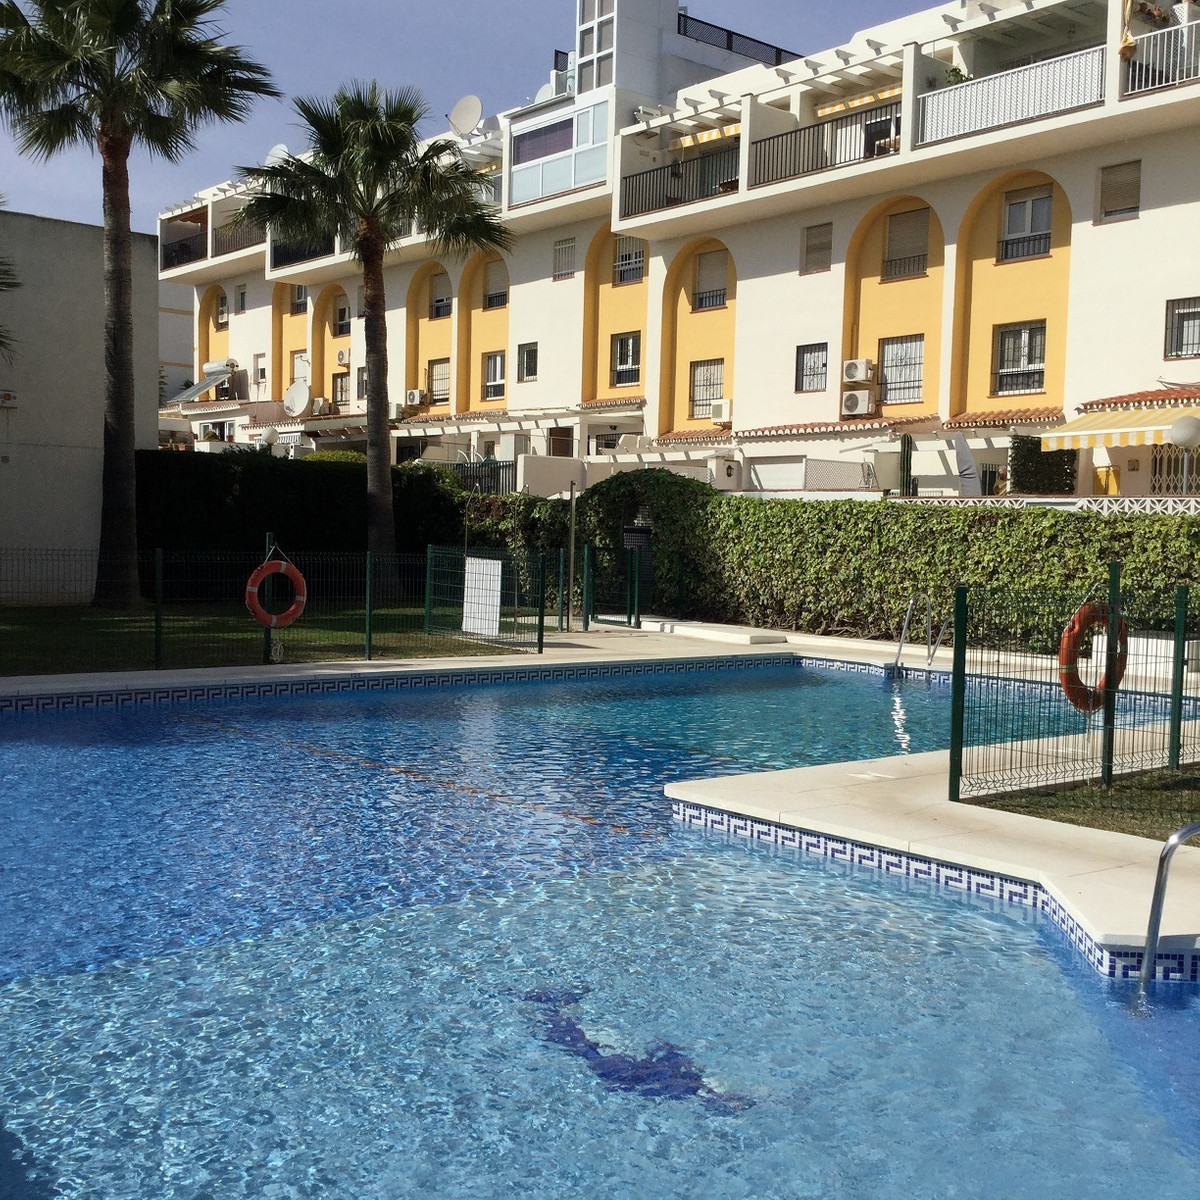 Excellent duplex apartment in Montemar Alto, Torremolinos. Featuring large kitchen, large living roo, Spain